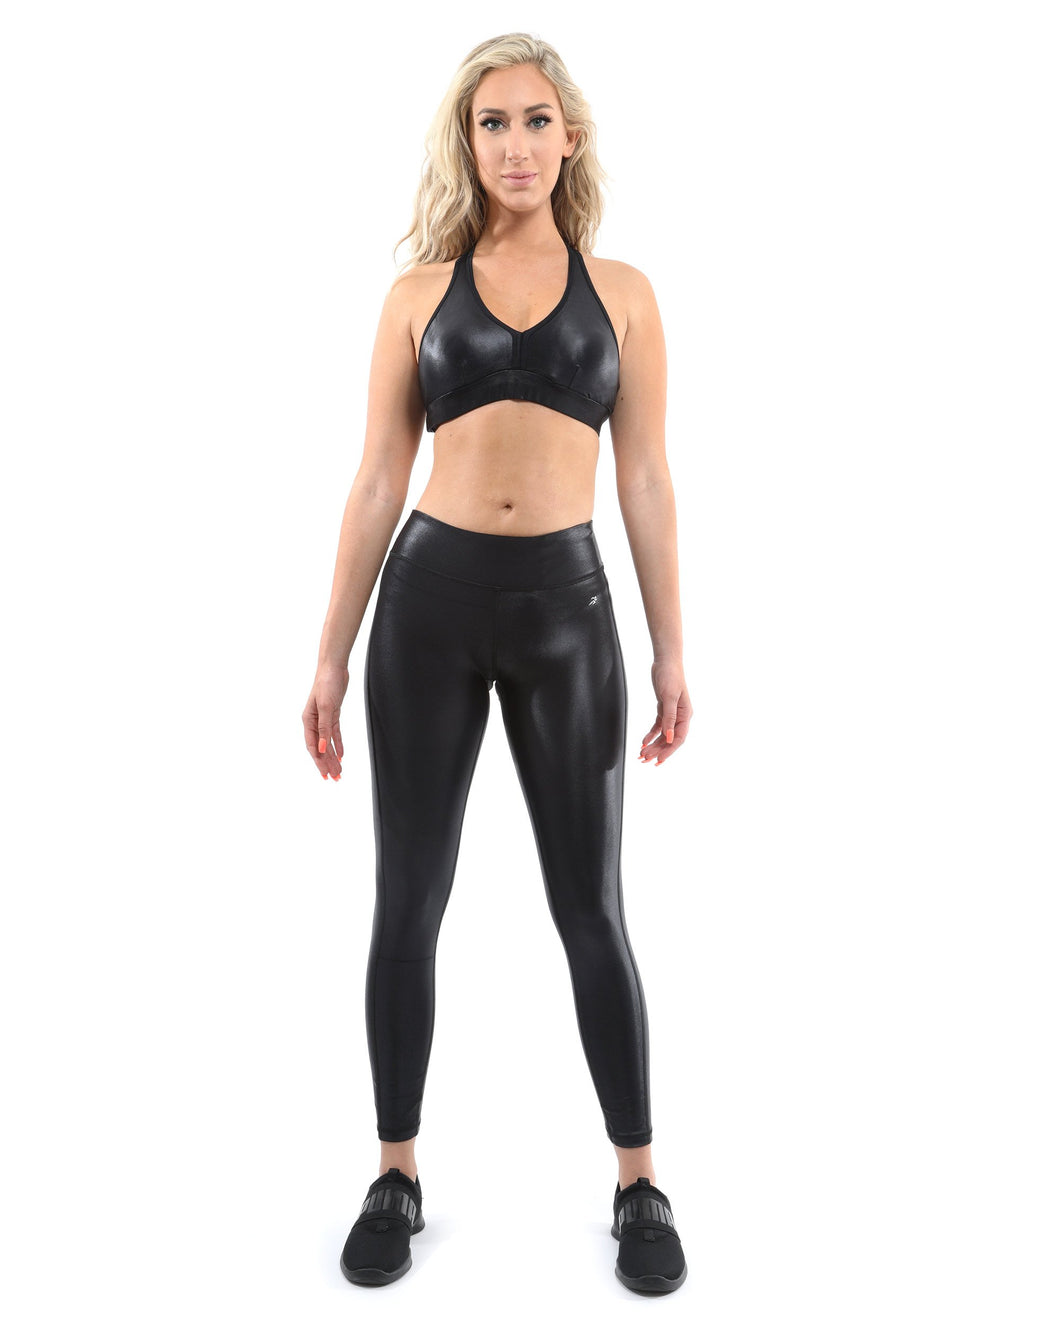 Cortina Activewear Leggings & Sports Bra Set - Black [MADE IN ITALY]